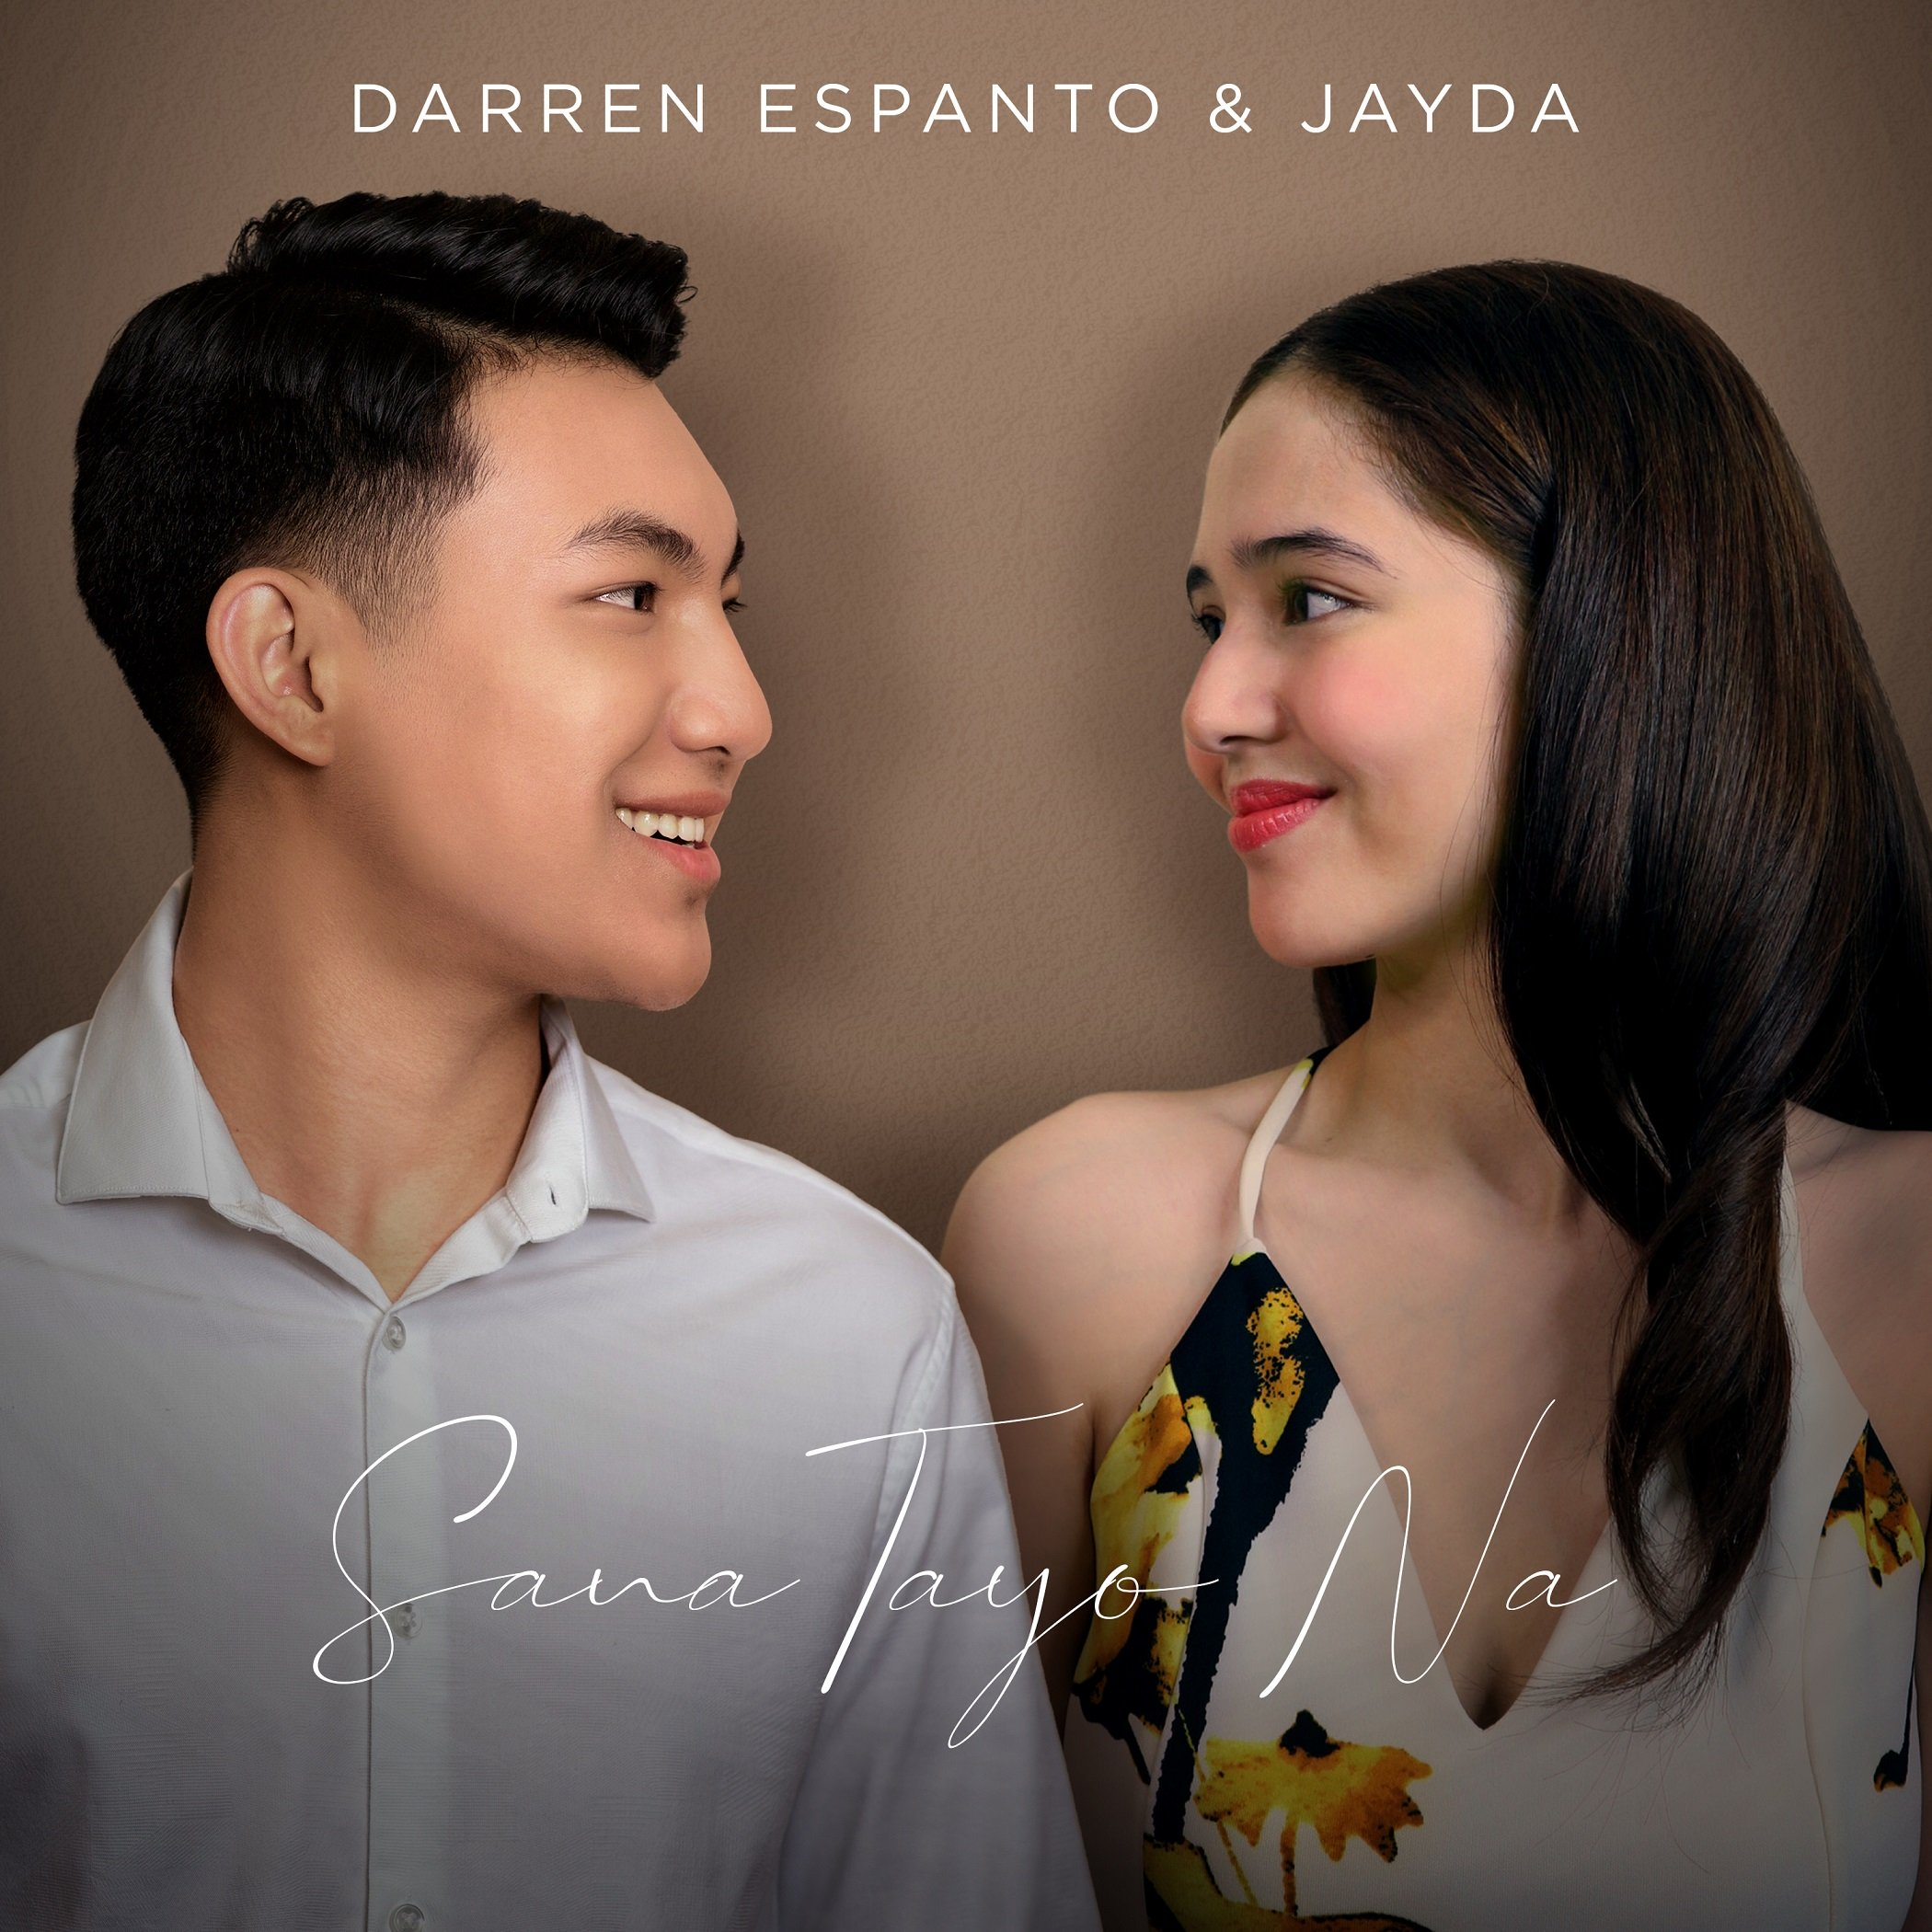 Darren and Jayda surprise fans with collab single